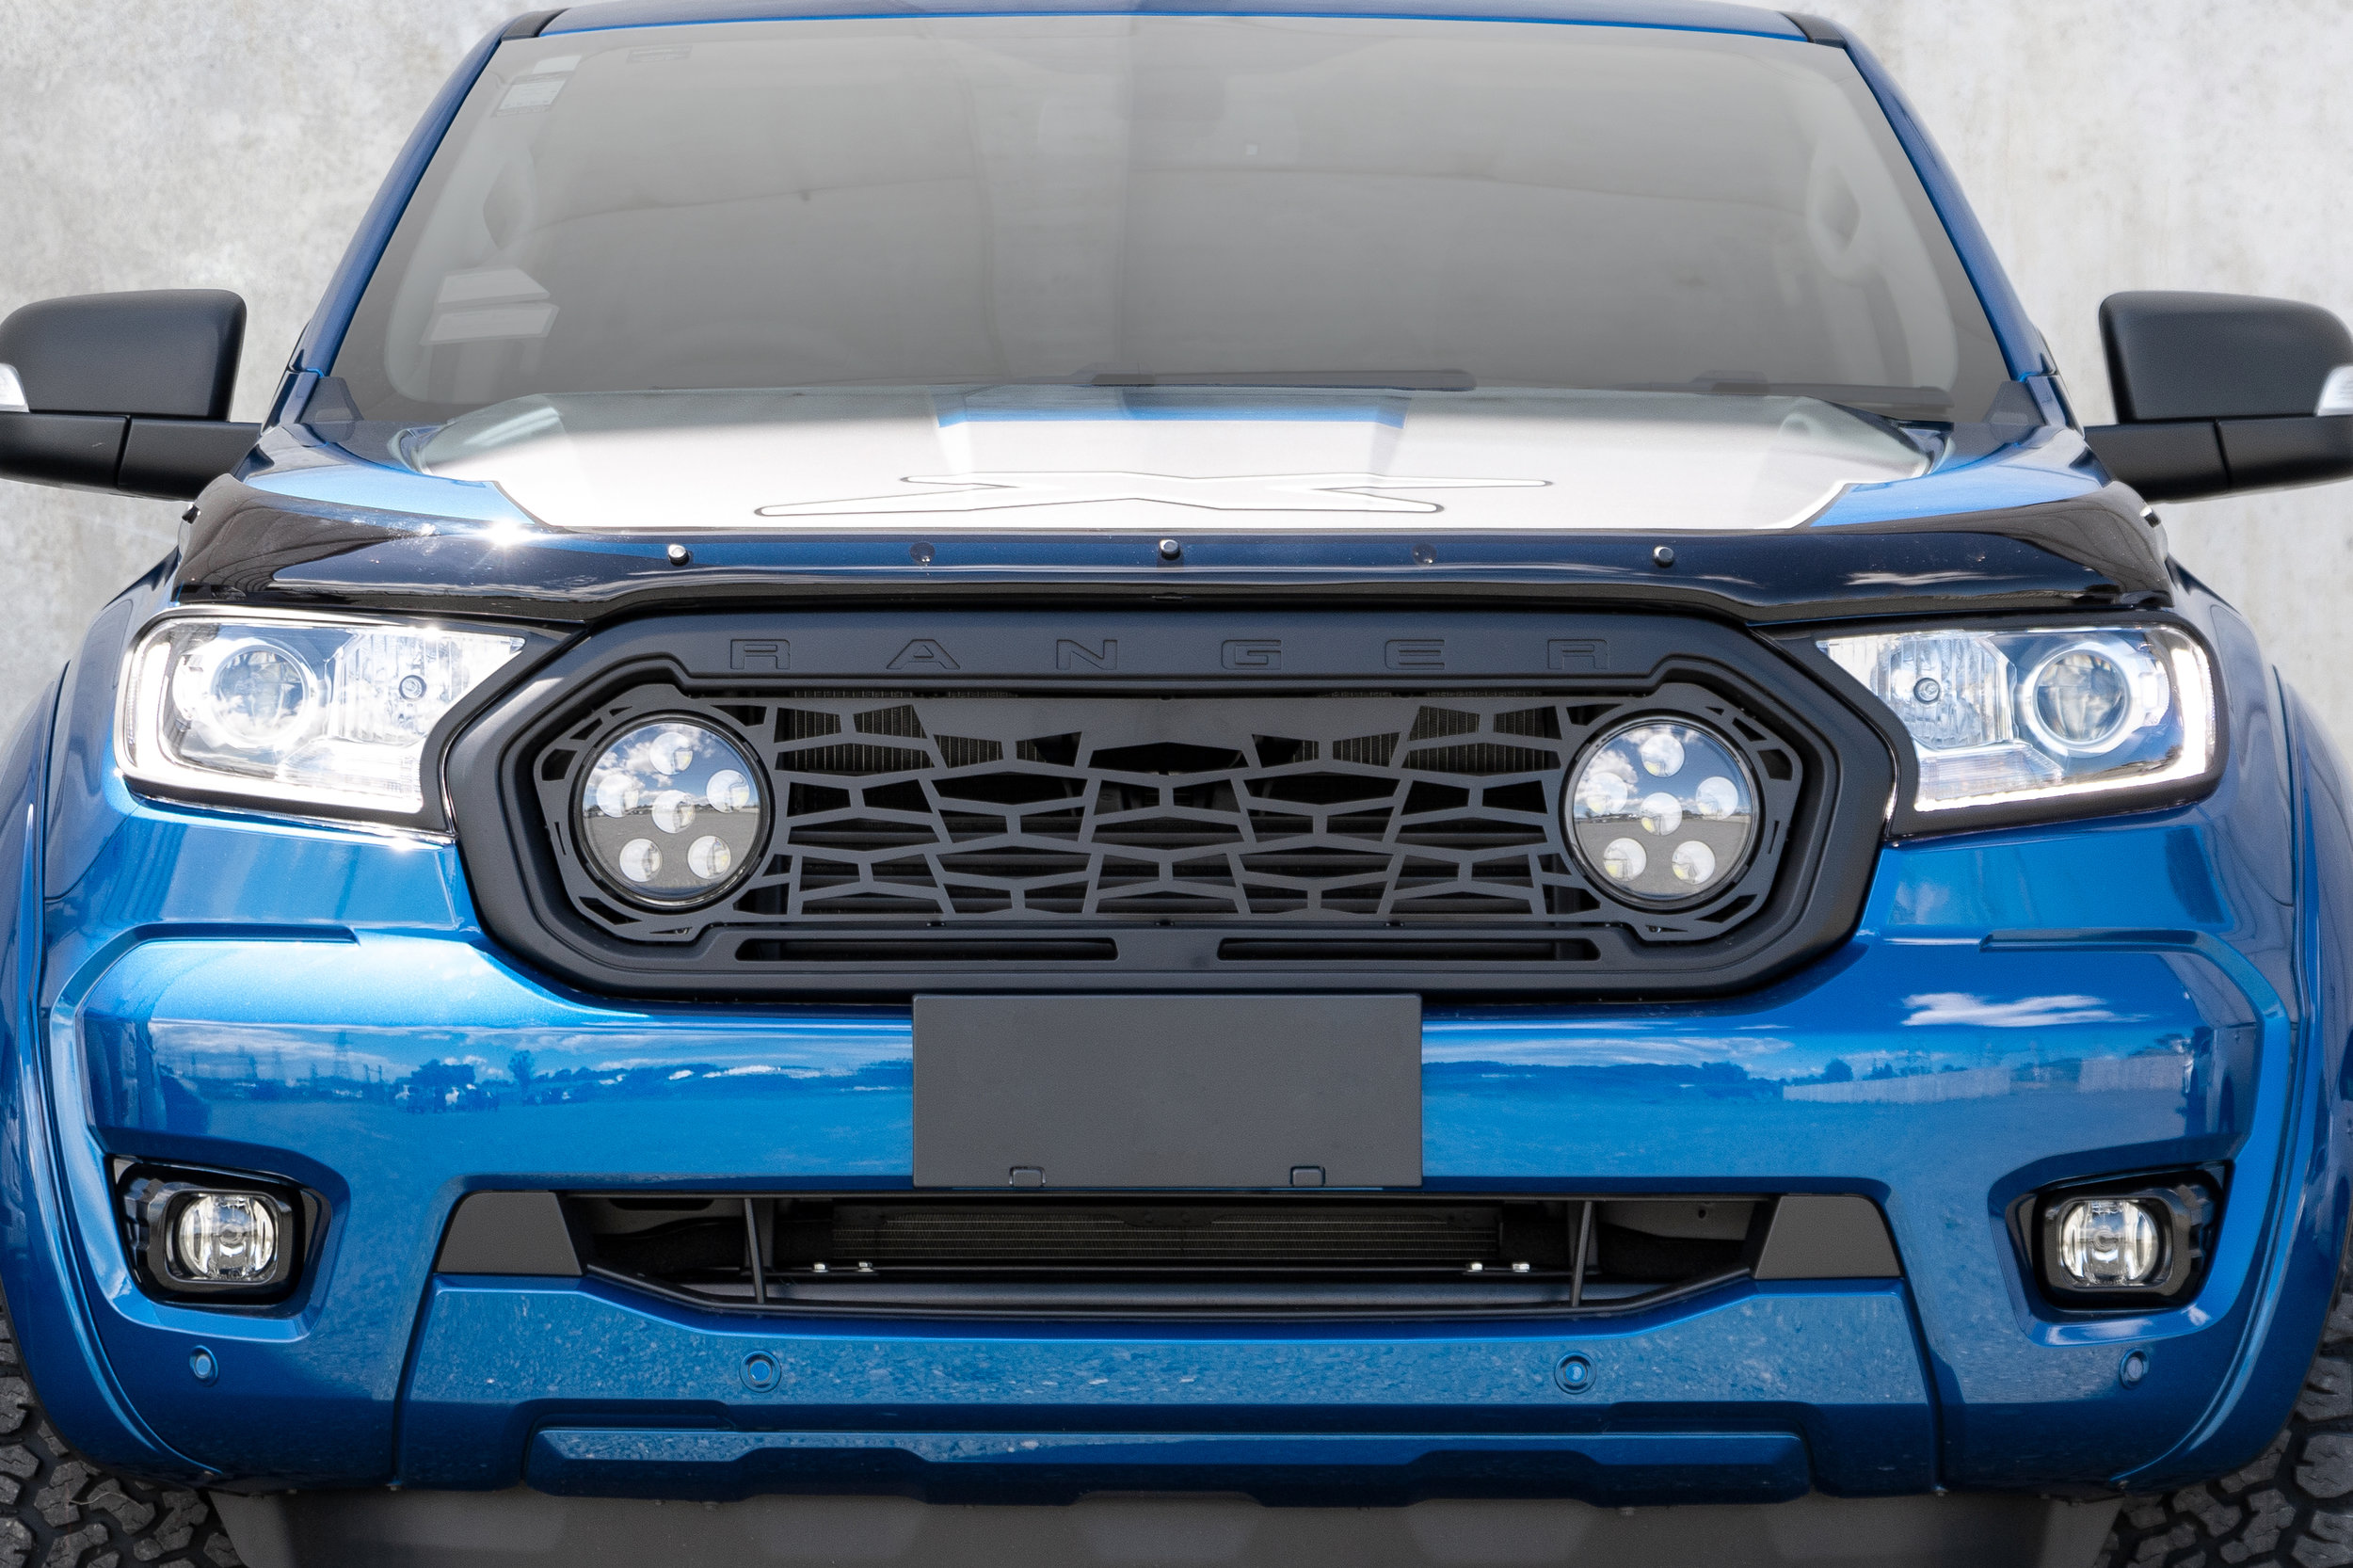 Grille mesh with lights